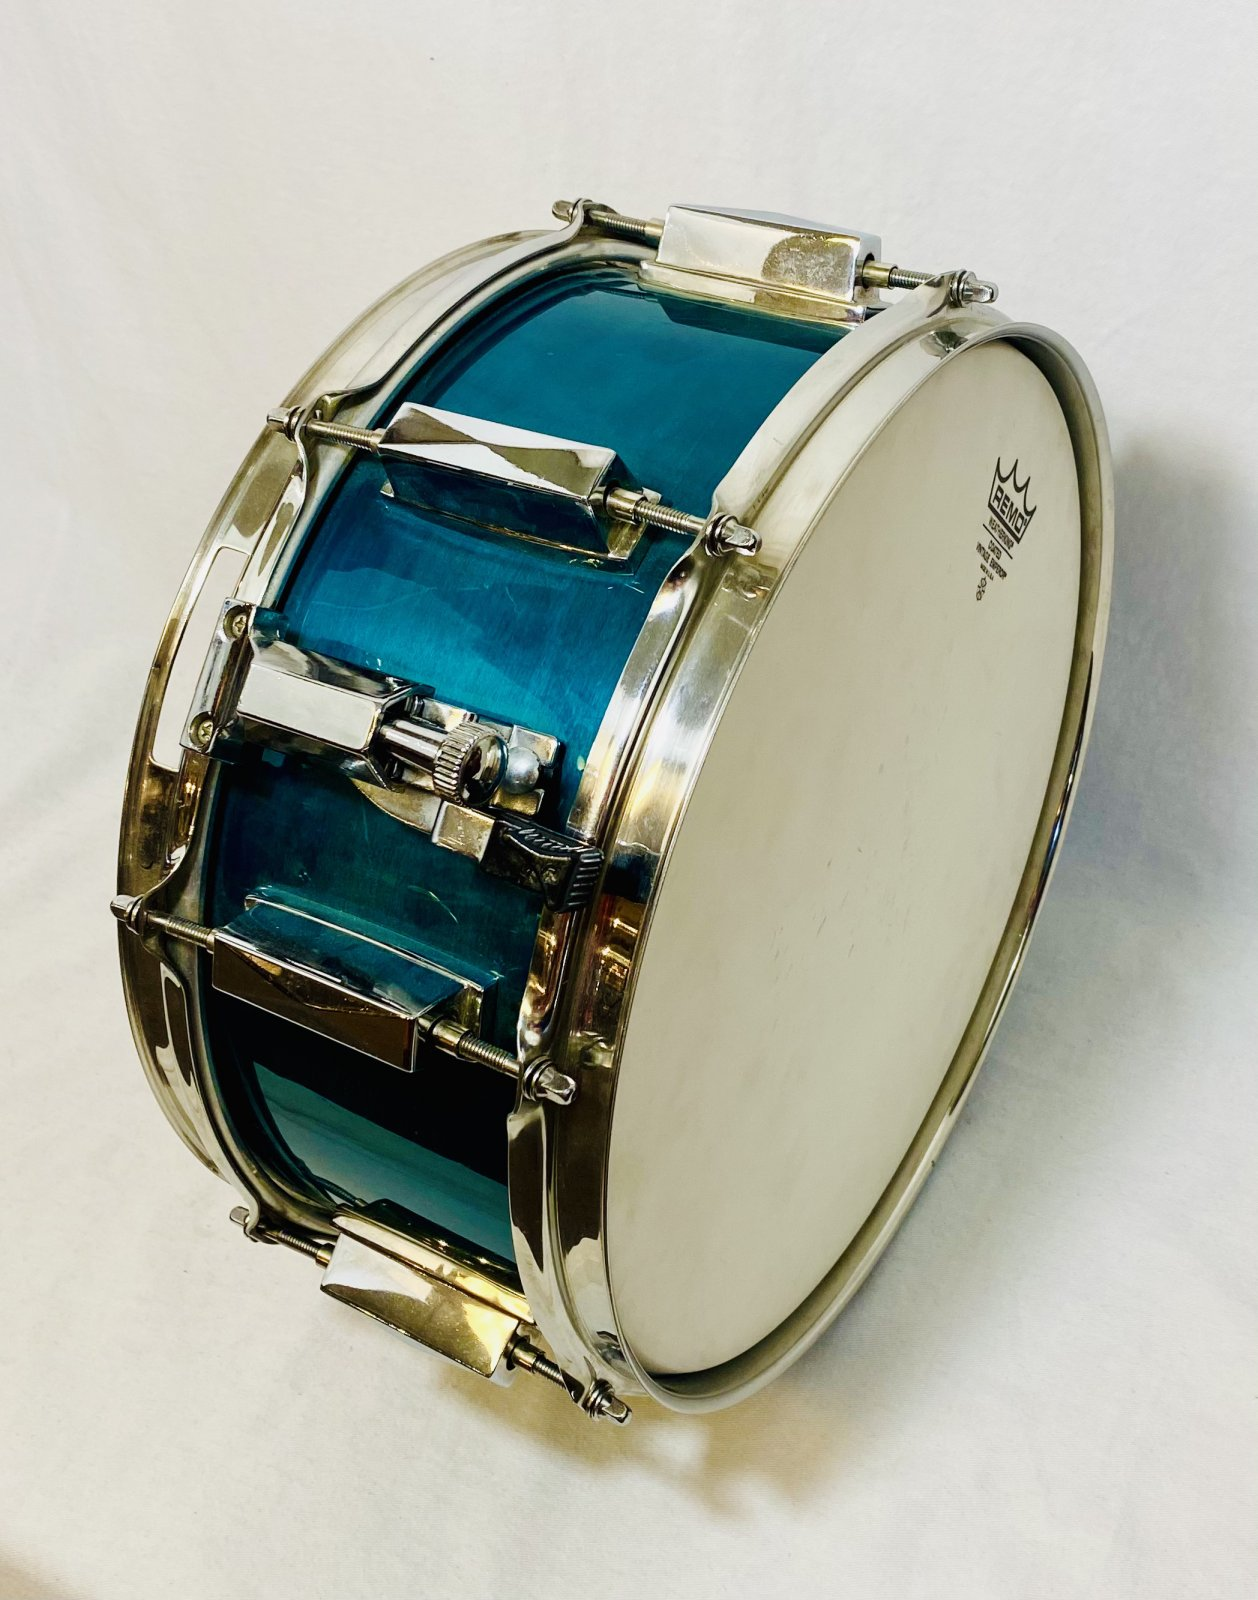 13 SNARE DRUM WITH KELLER SHELL, TURQUOISE